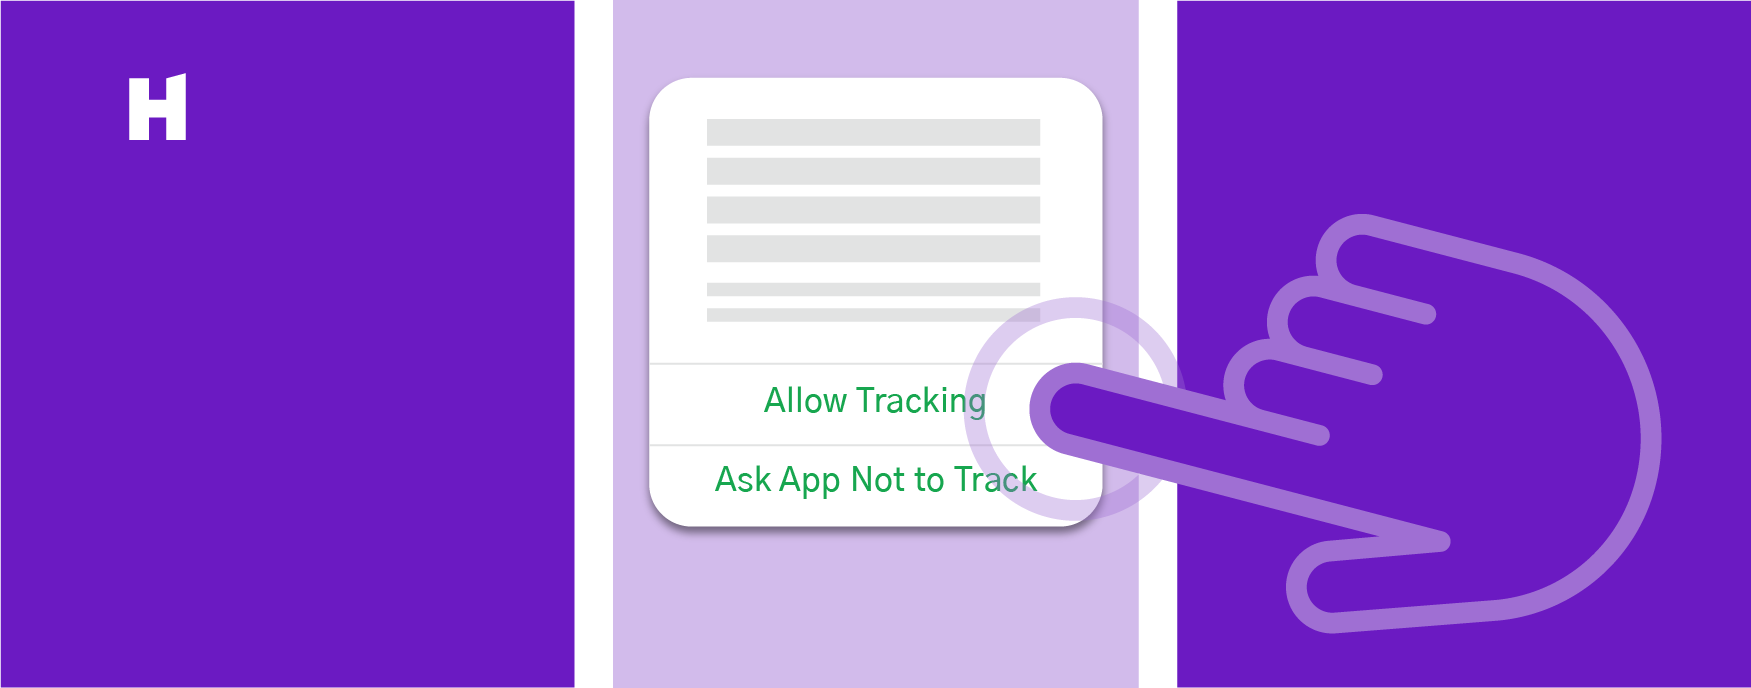 02-Allow-Tracking-Examples